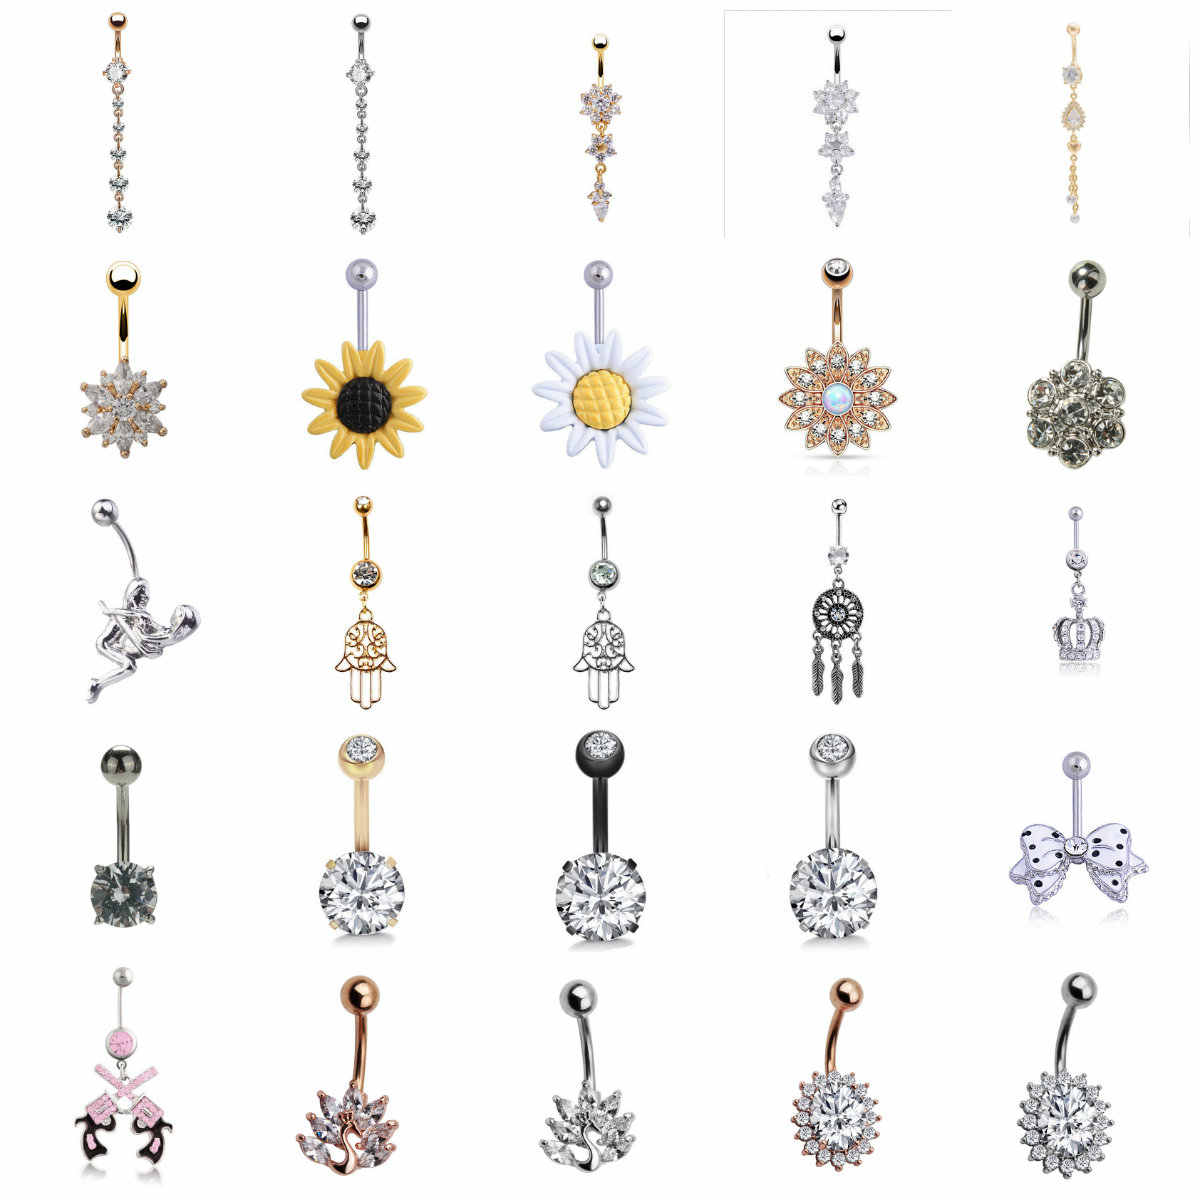 1pc Belly Button Piercings Sexy Navel Piercing Belly Button Rings Nombril Ear Piercings Ombligo Navelpiercing Body Jewelry